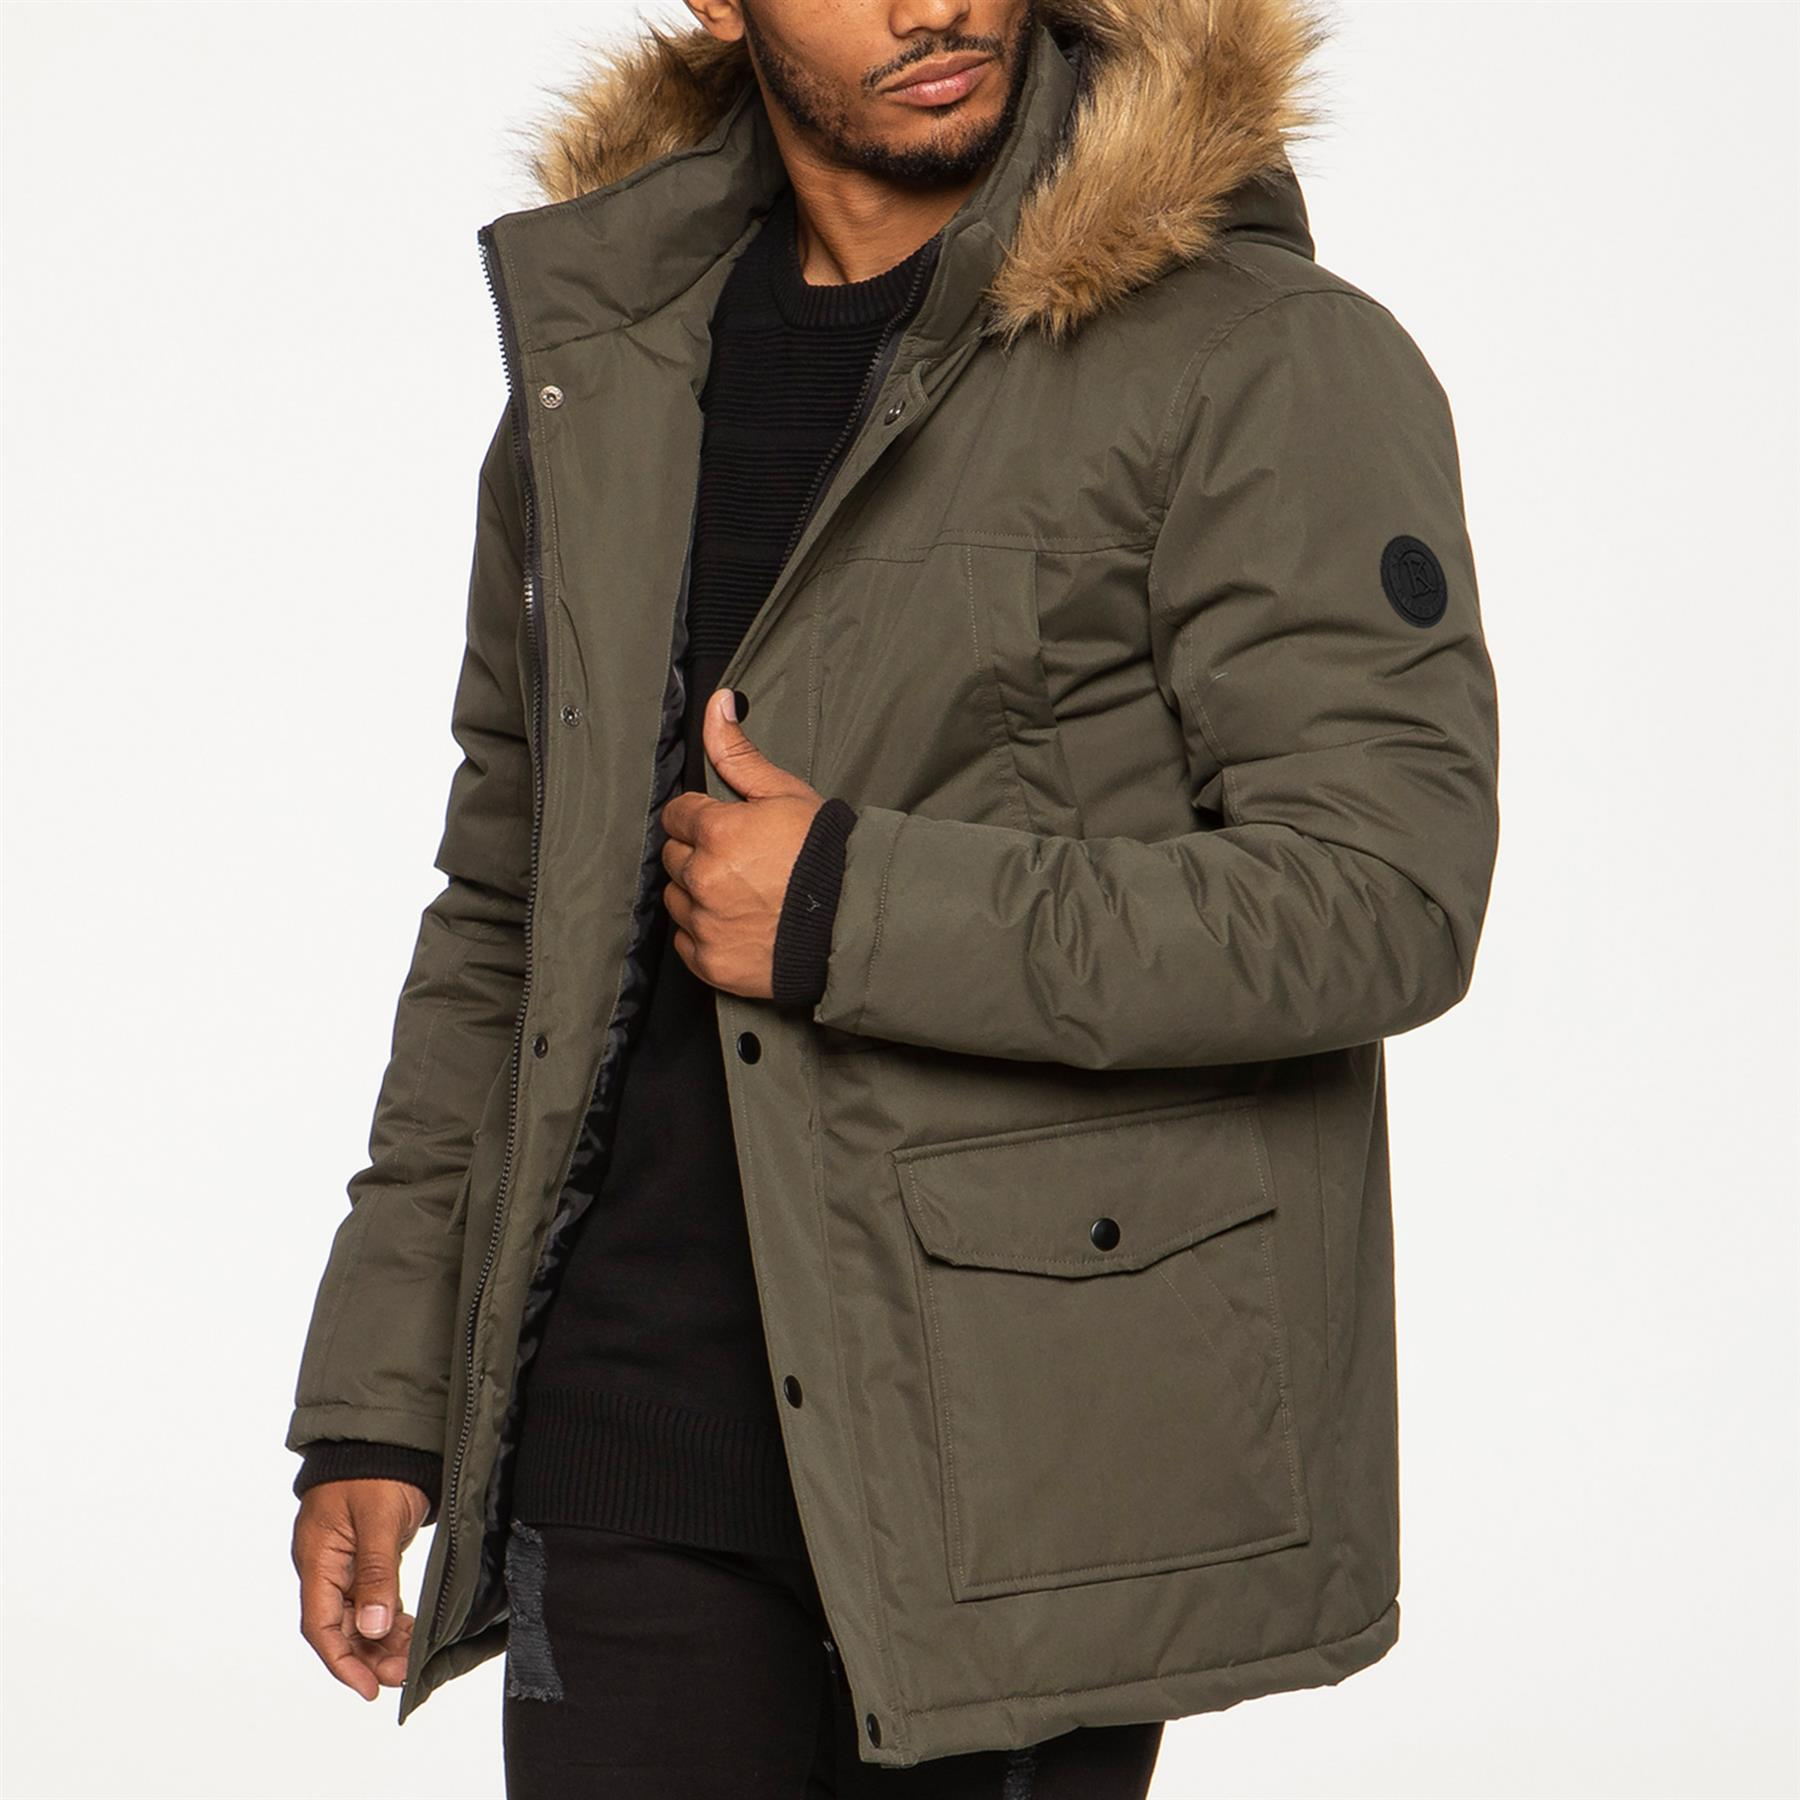 Mens-Parka-Jacket-Faux-Fur-Trimmed-Hooded-Winter-Warm-Long-Padded-Outerwear-Coat thumbnail 11